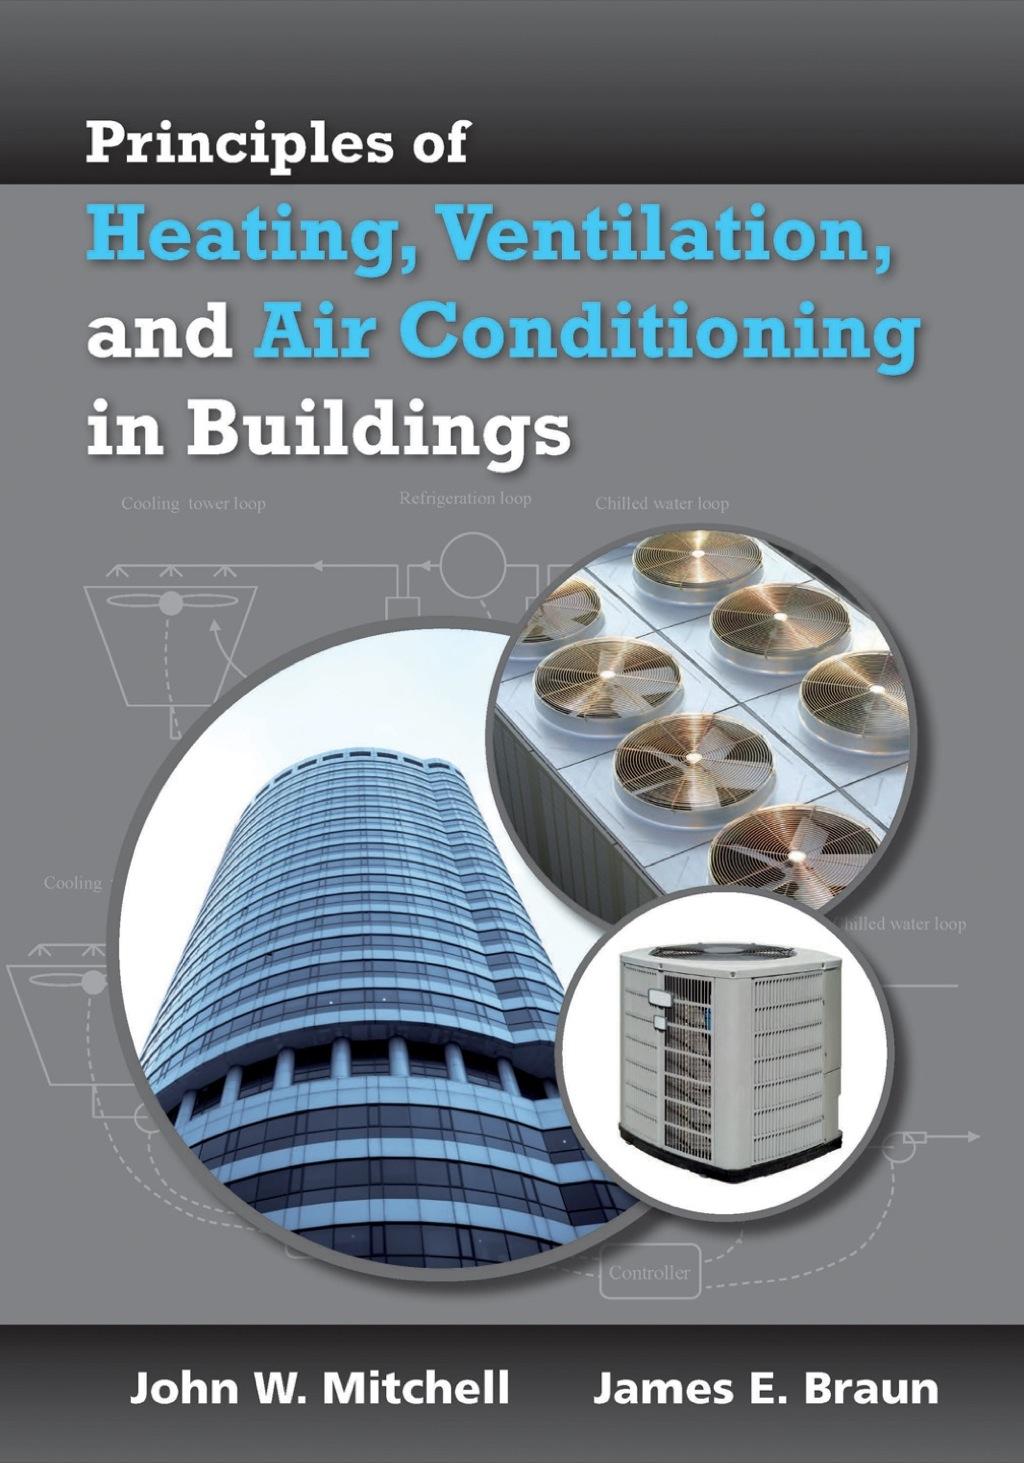 Heating, Ventilation, and Air Conditioning in Buildings (ebook) eBooks